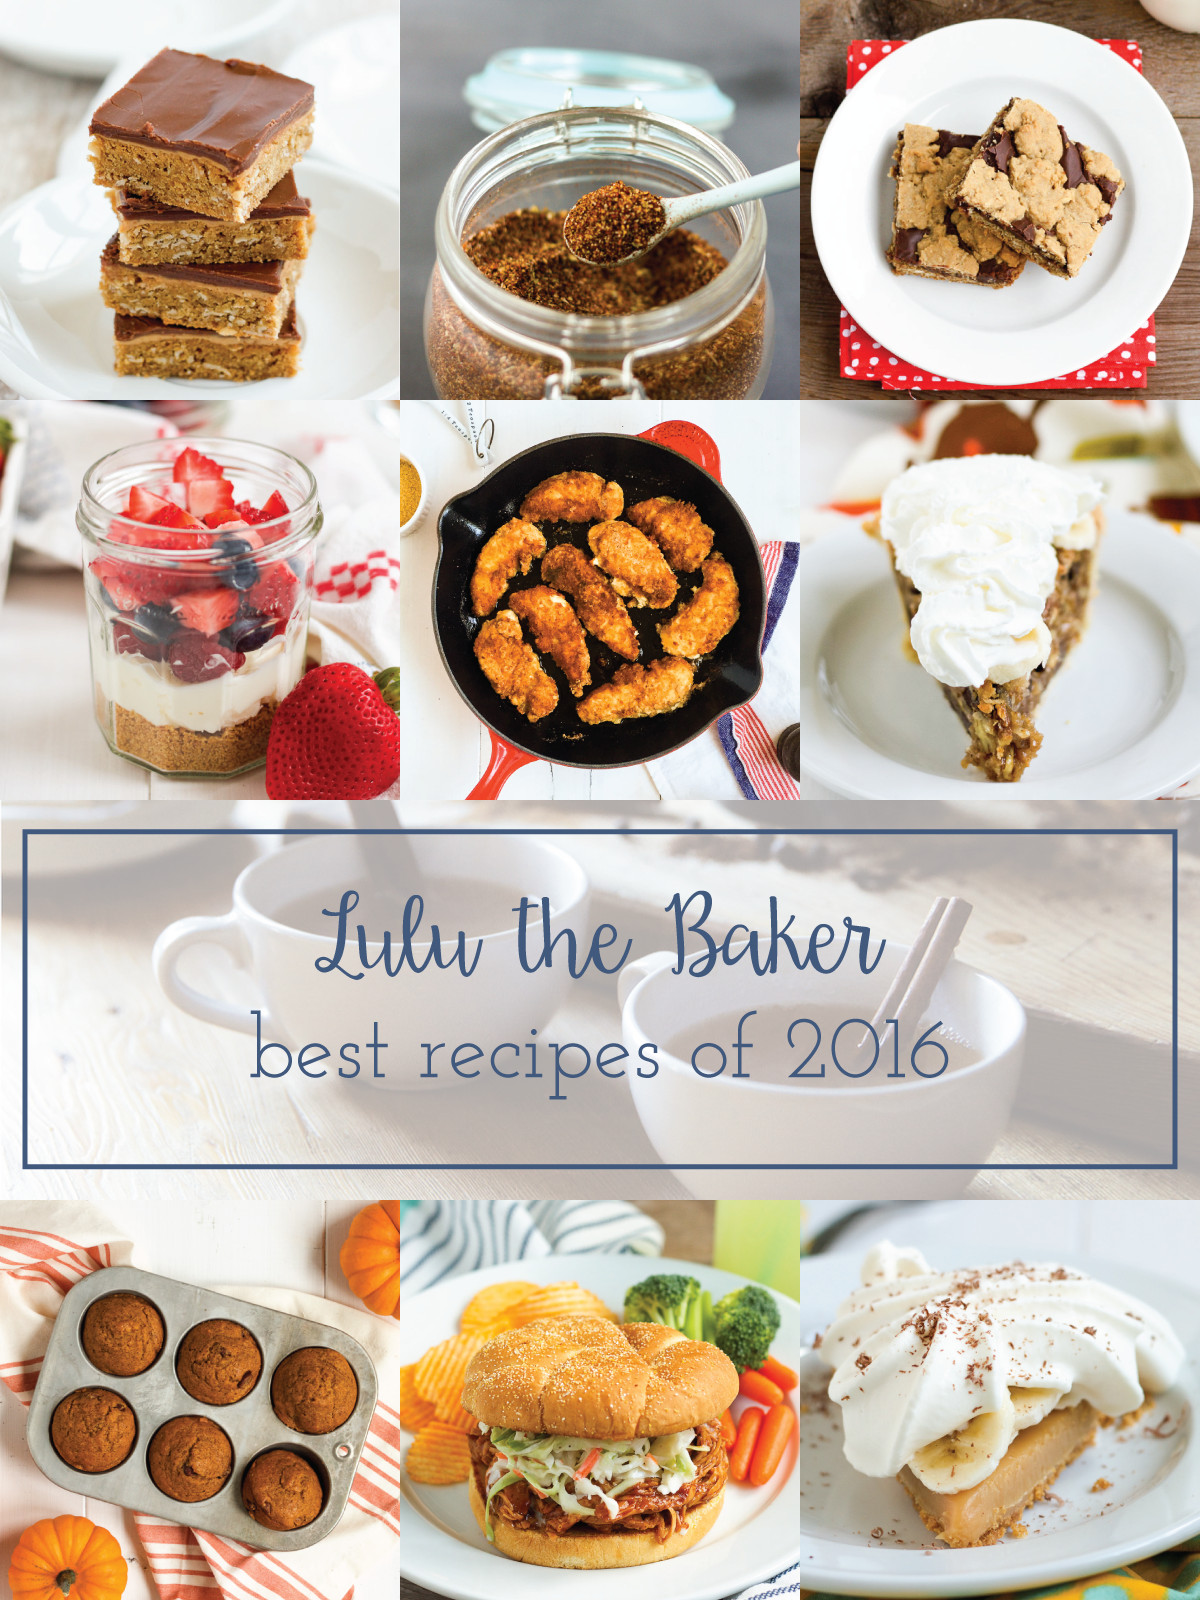 Your top 10 reader favorites of 2016 are on Lulu the Baker today! Bar cookies, pies, fried chicken, and more!